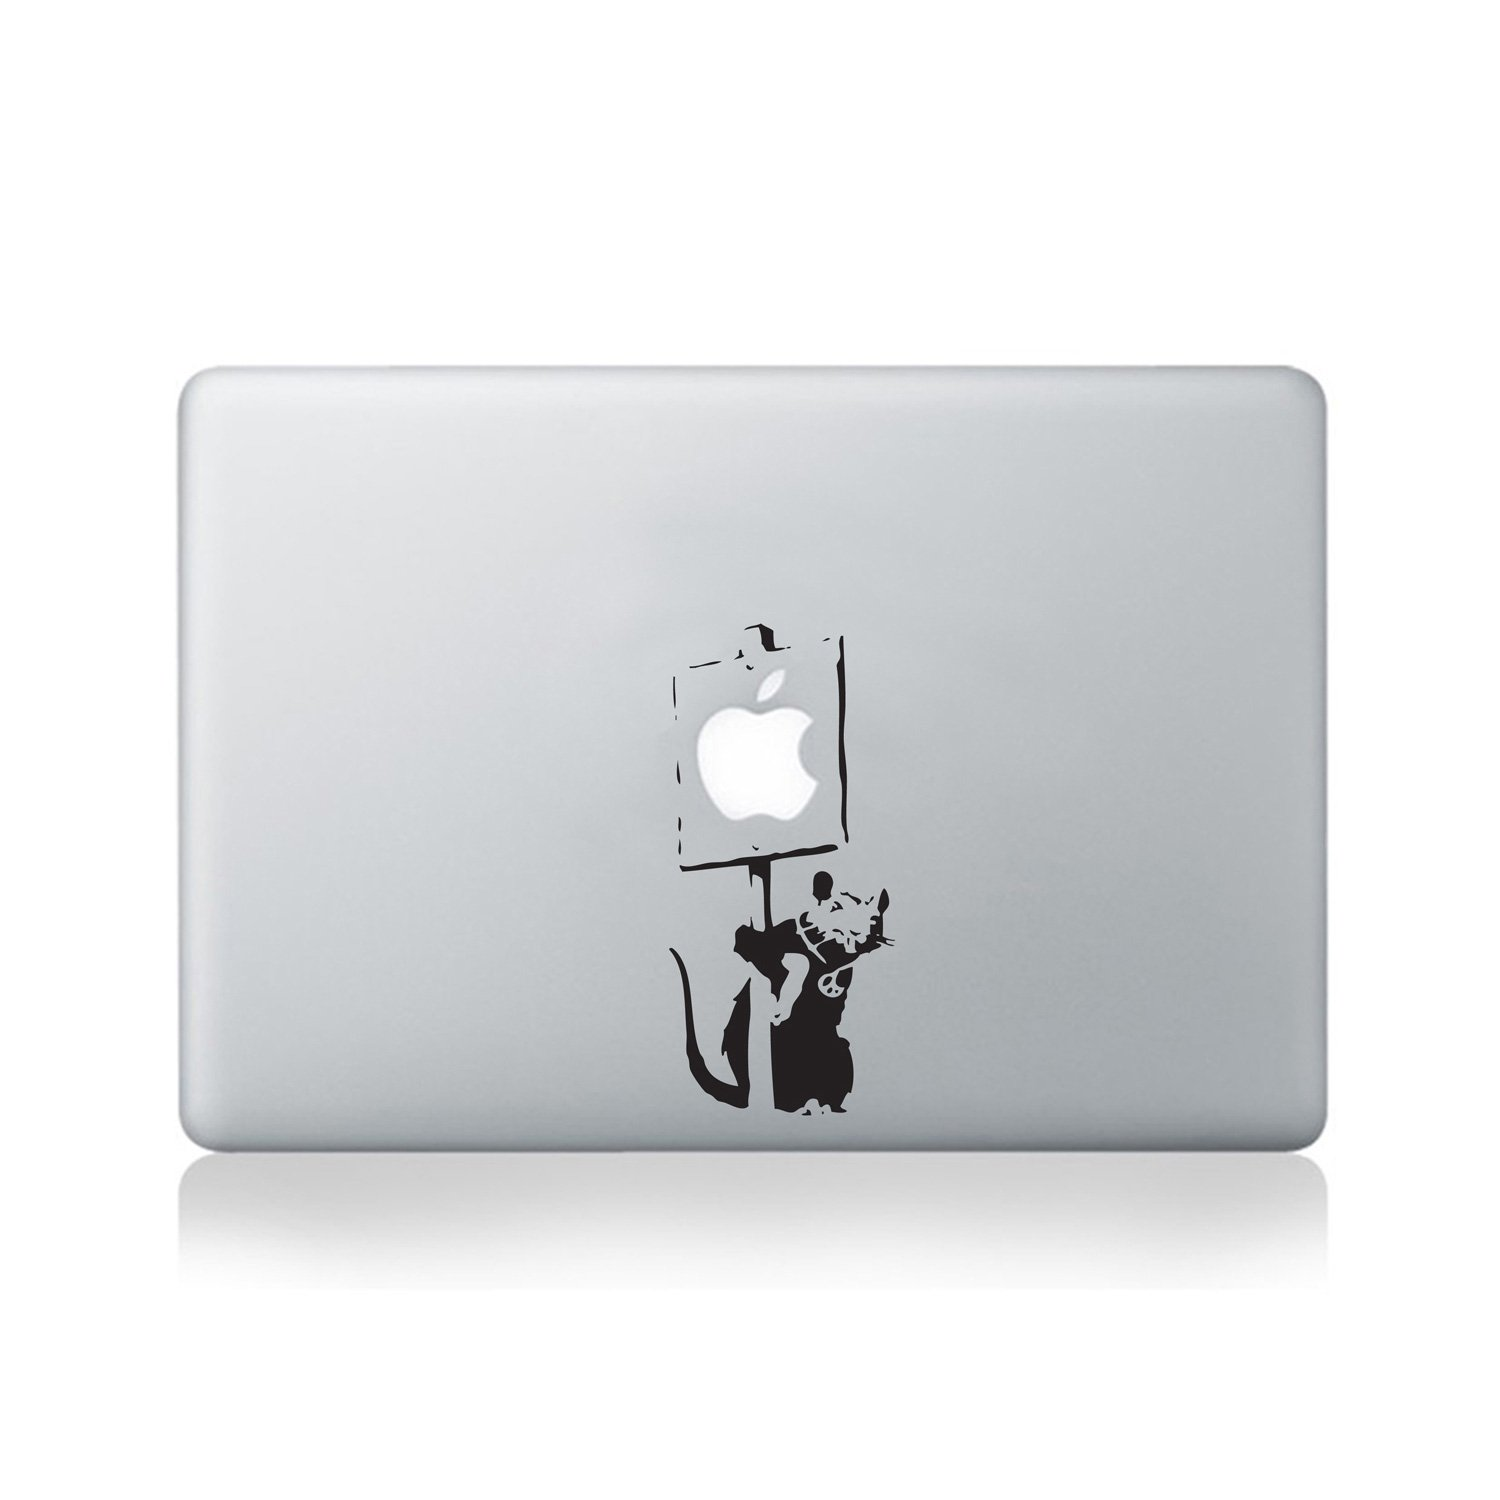 Banksy Rat Holding Sign Vinyl Decal for MacBook (13/15) or Laptop